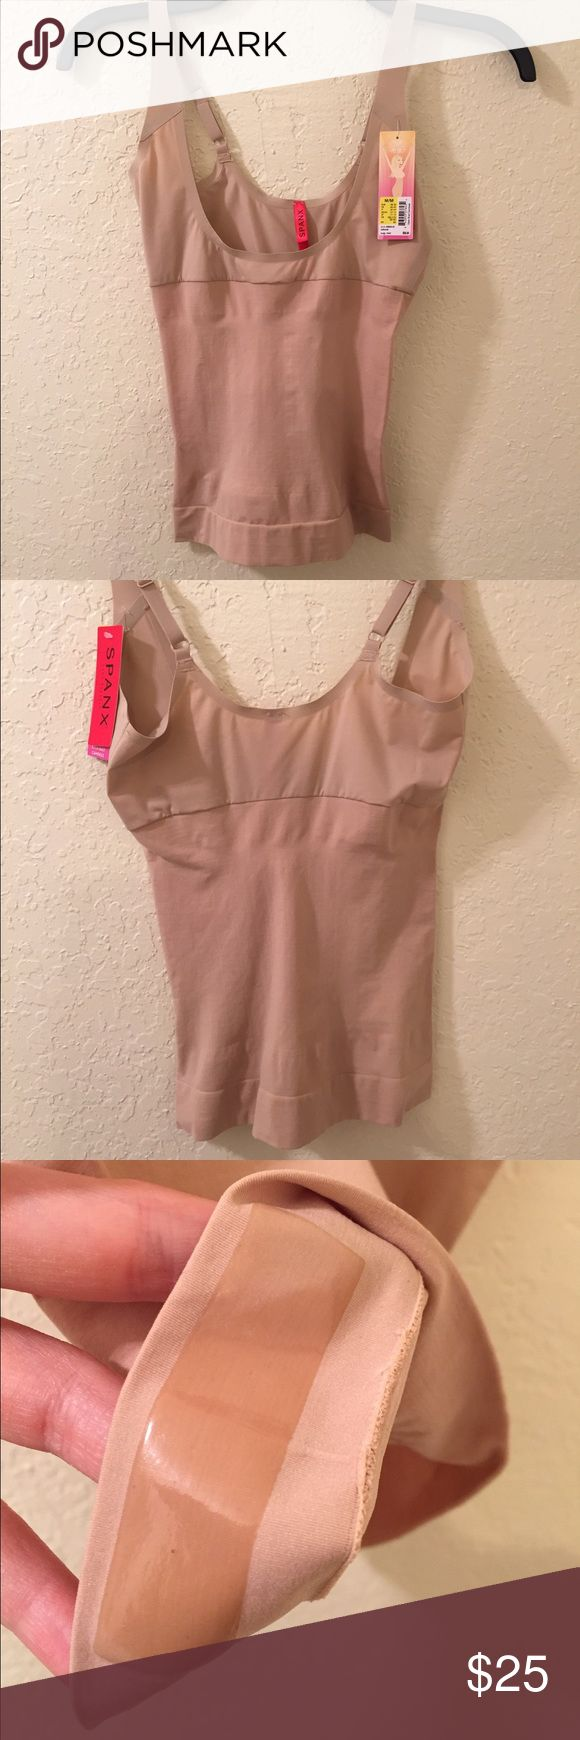 Spanx NUDE/BEIGE Open-Bust Camisole *NWT* This open-bust design allows you to wear your own bra while zeroing in on any trouble spots. It runs small so would work for someone looking for a small or a tight medium. Never been worn but has some dust marks that will come out after washing (pictured above). Has two sticky patches to ensure the garment stays in place. Spandex/Nylon material. SPANX Intimates & Sleepwear Shapewear